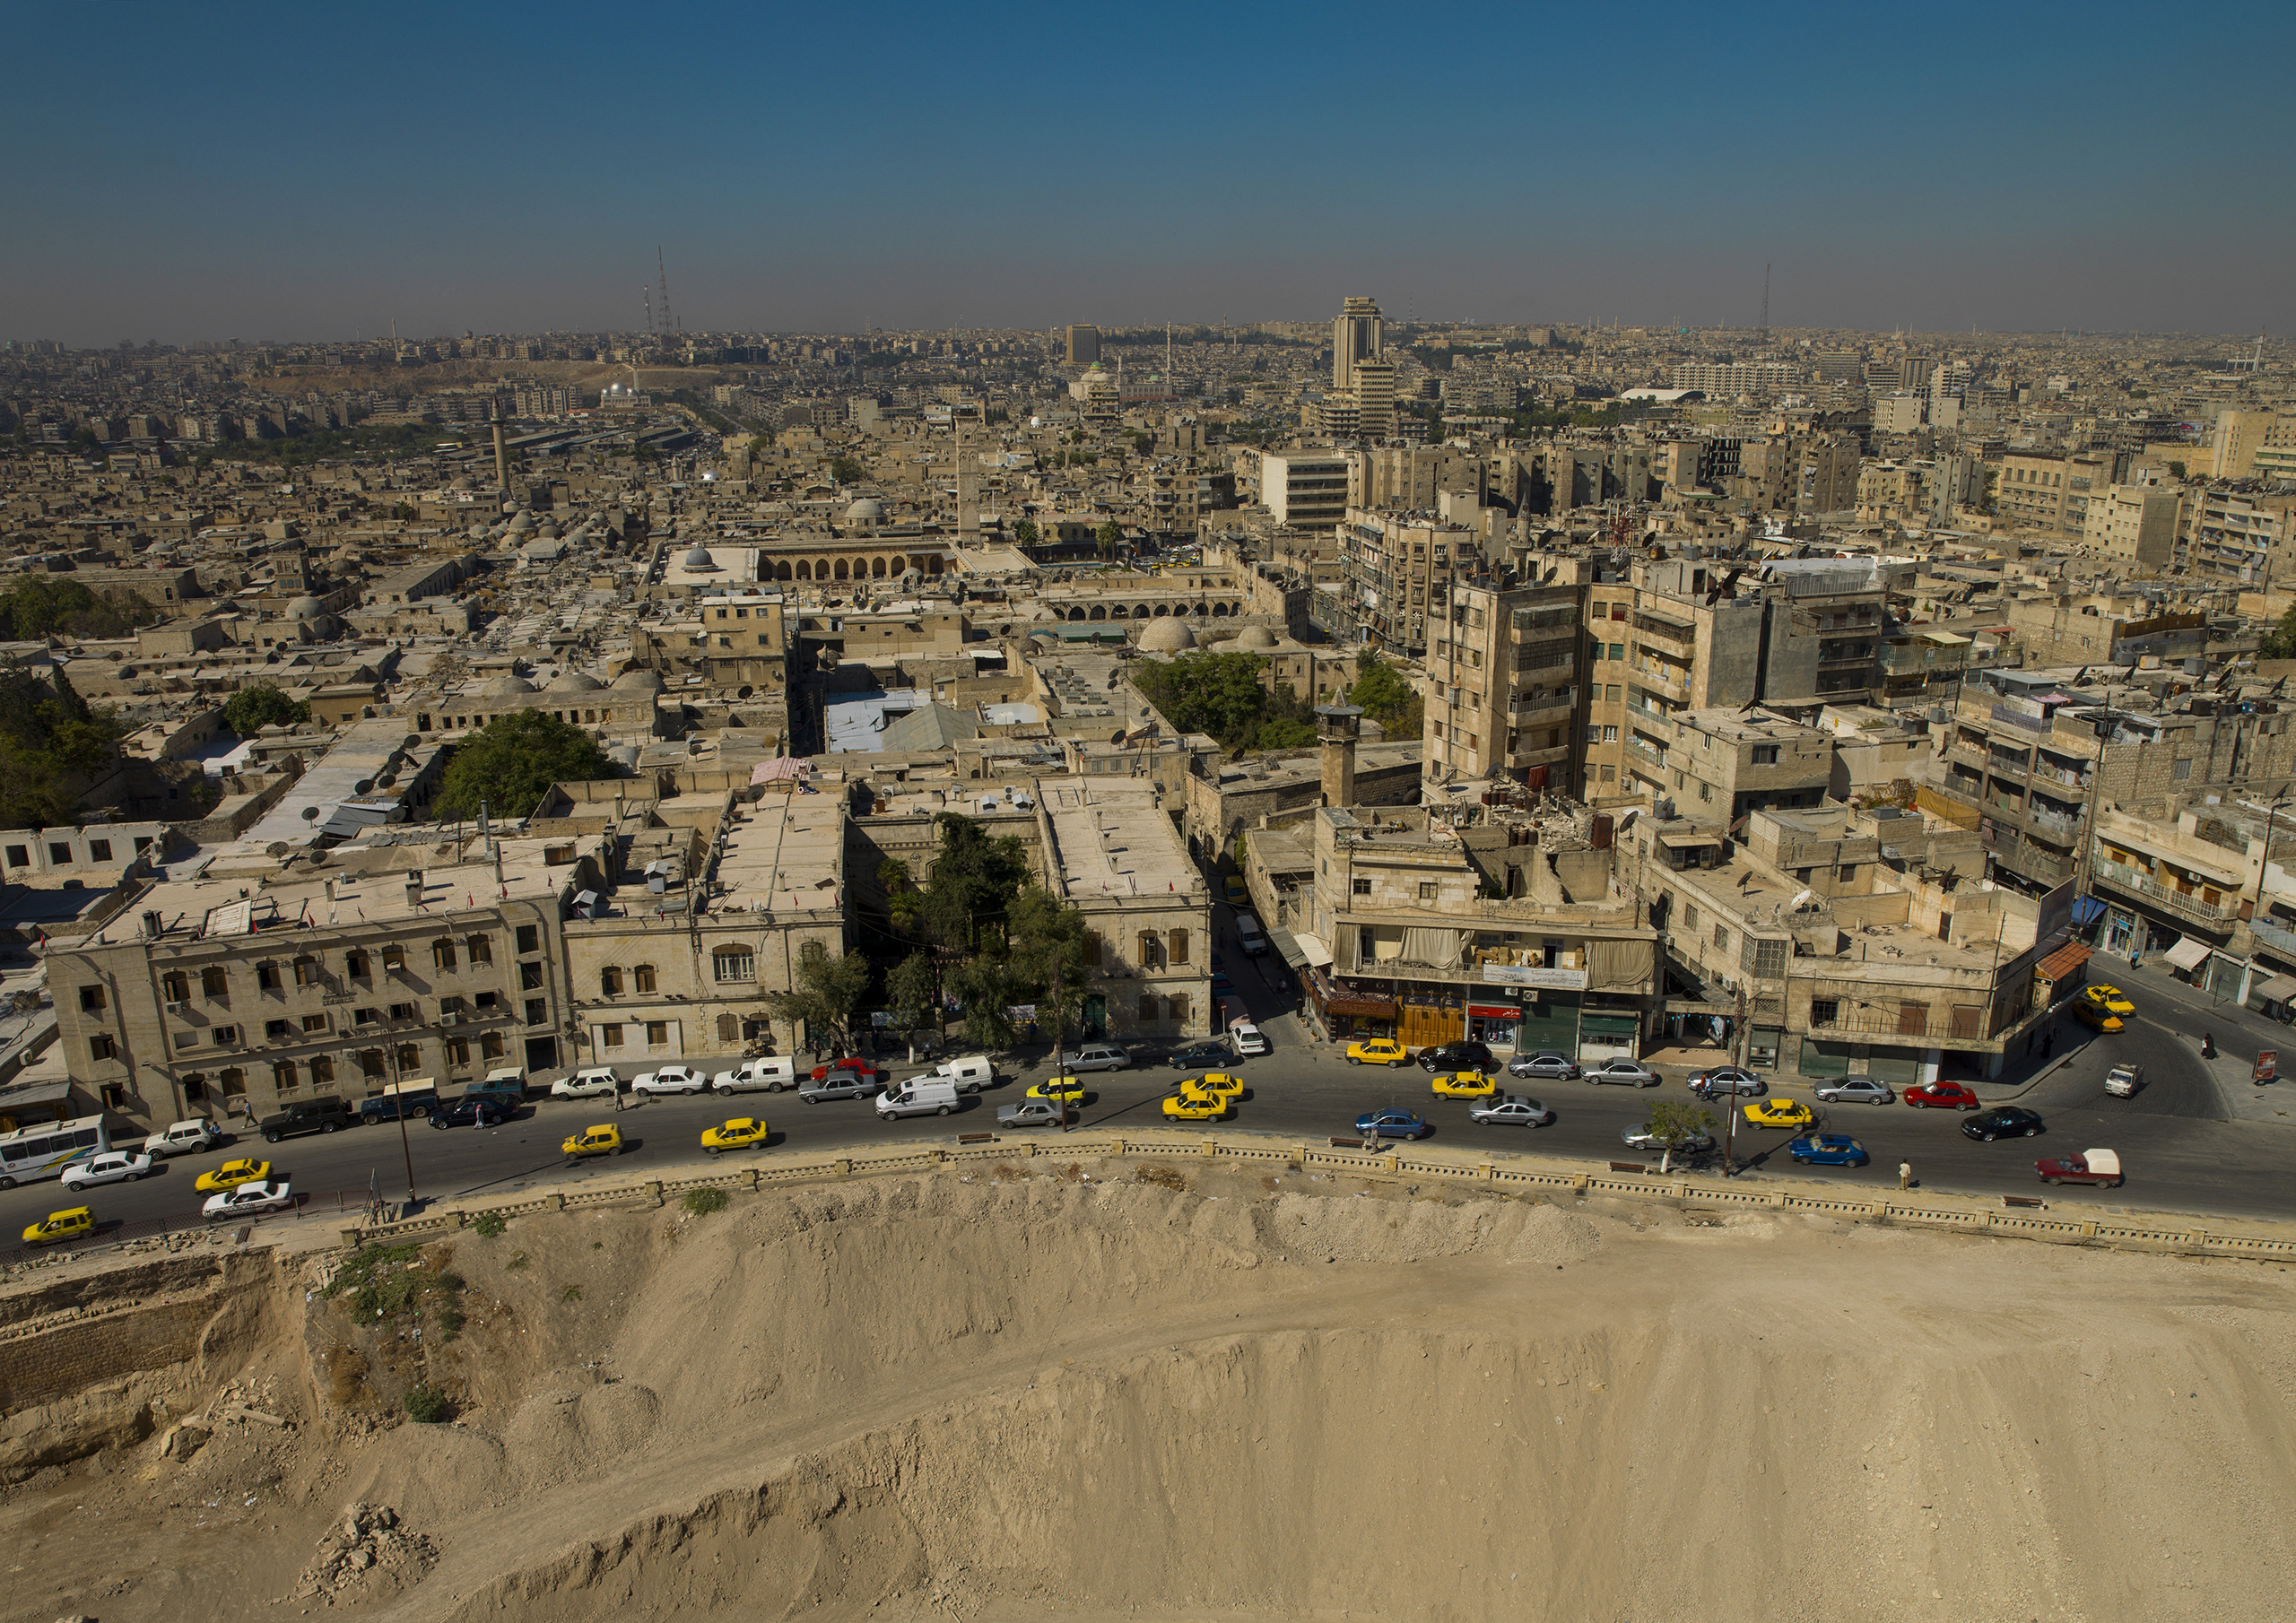 A sweeping view of Aleppo, Syria, on Oct. 5, 2006. Aleppo was famous for its architecture, attractive churches, mosques, schools and baths, and became an important center of trade between the eastern Mediterranean kingdoms and the merchants of Venice.